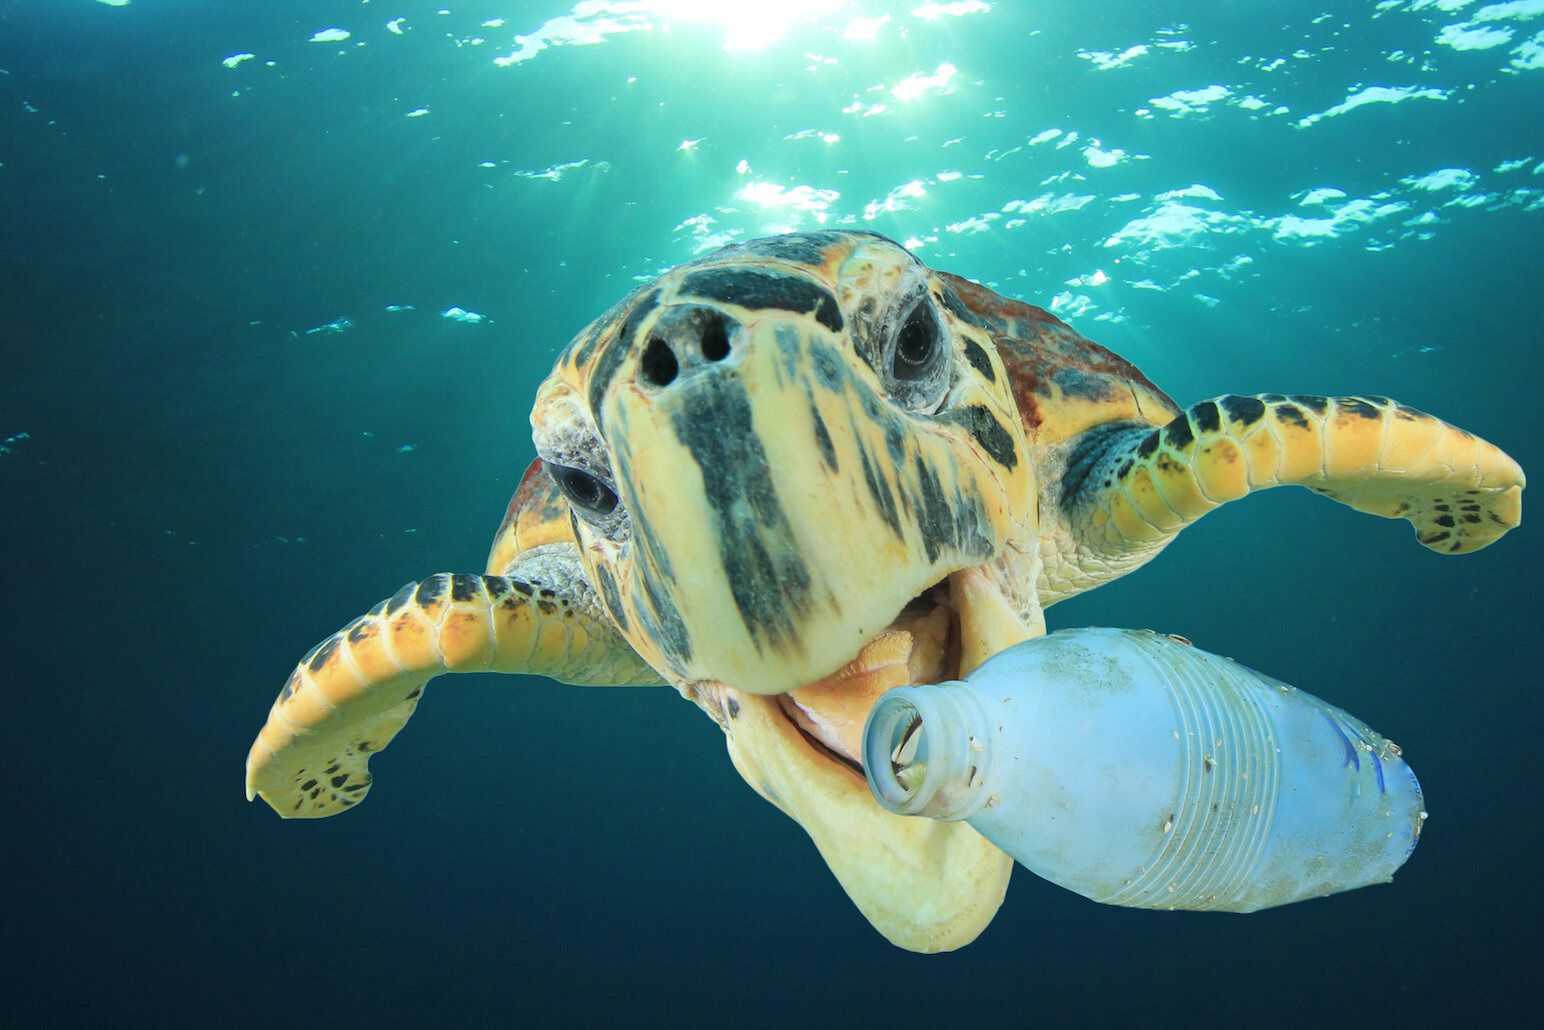 Plastic-pollution-in-Earth's-oceans-could-triple-by-2025-.jpg